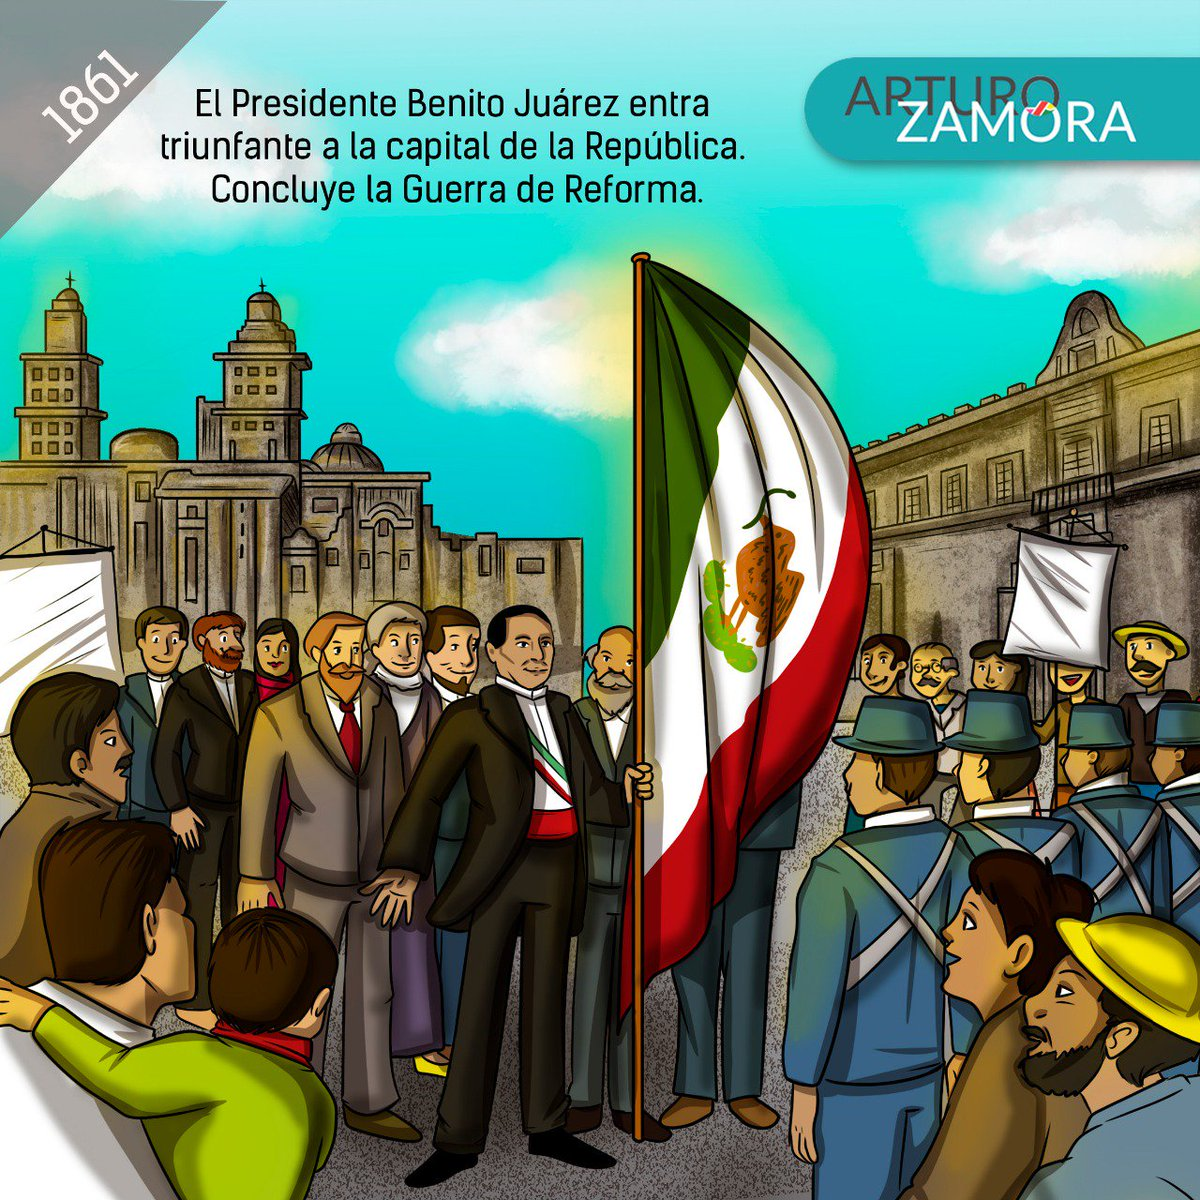 Arturo Zamora's photo on Guerra de Reforma